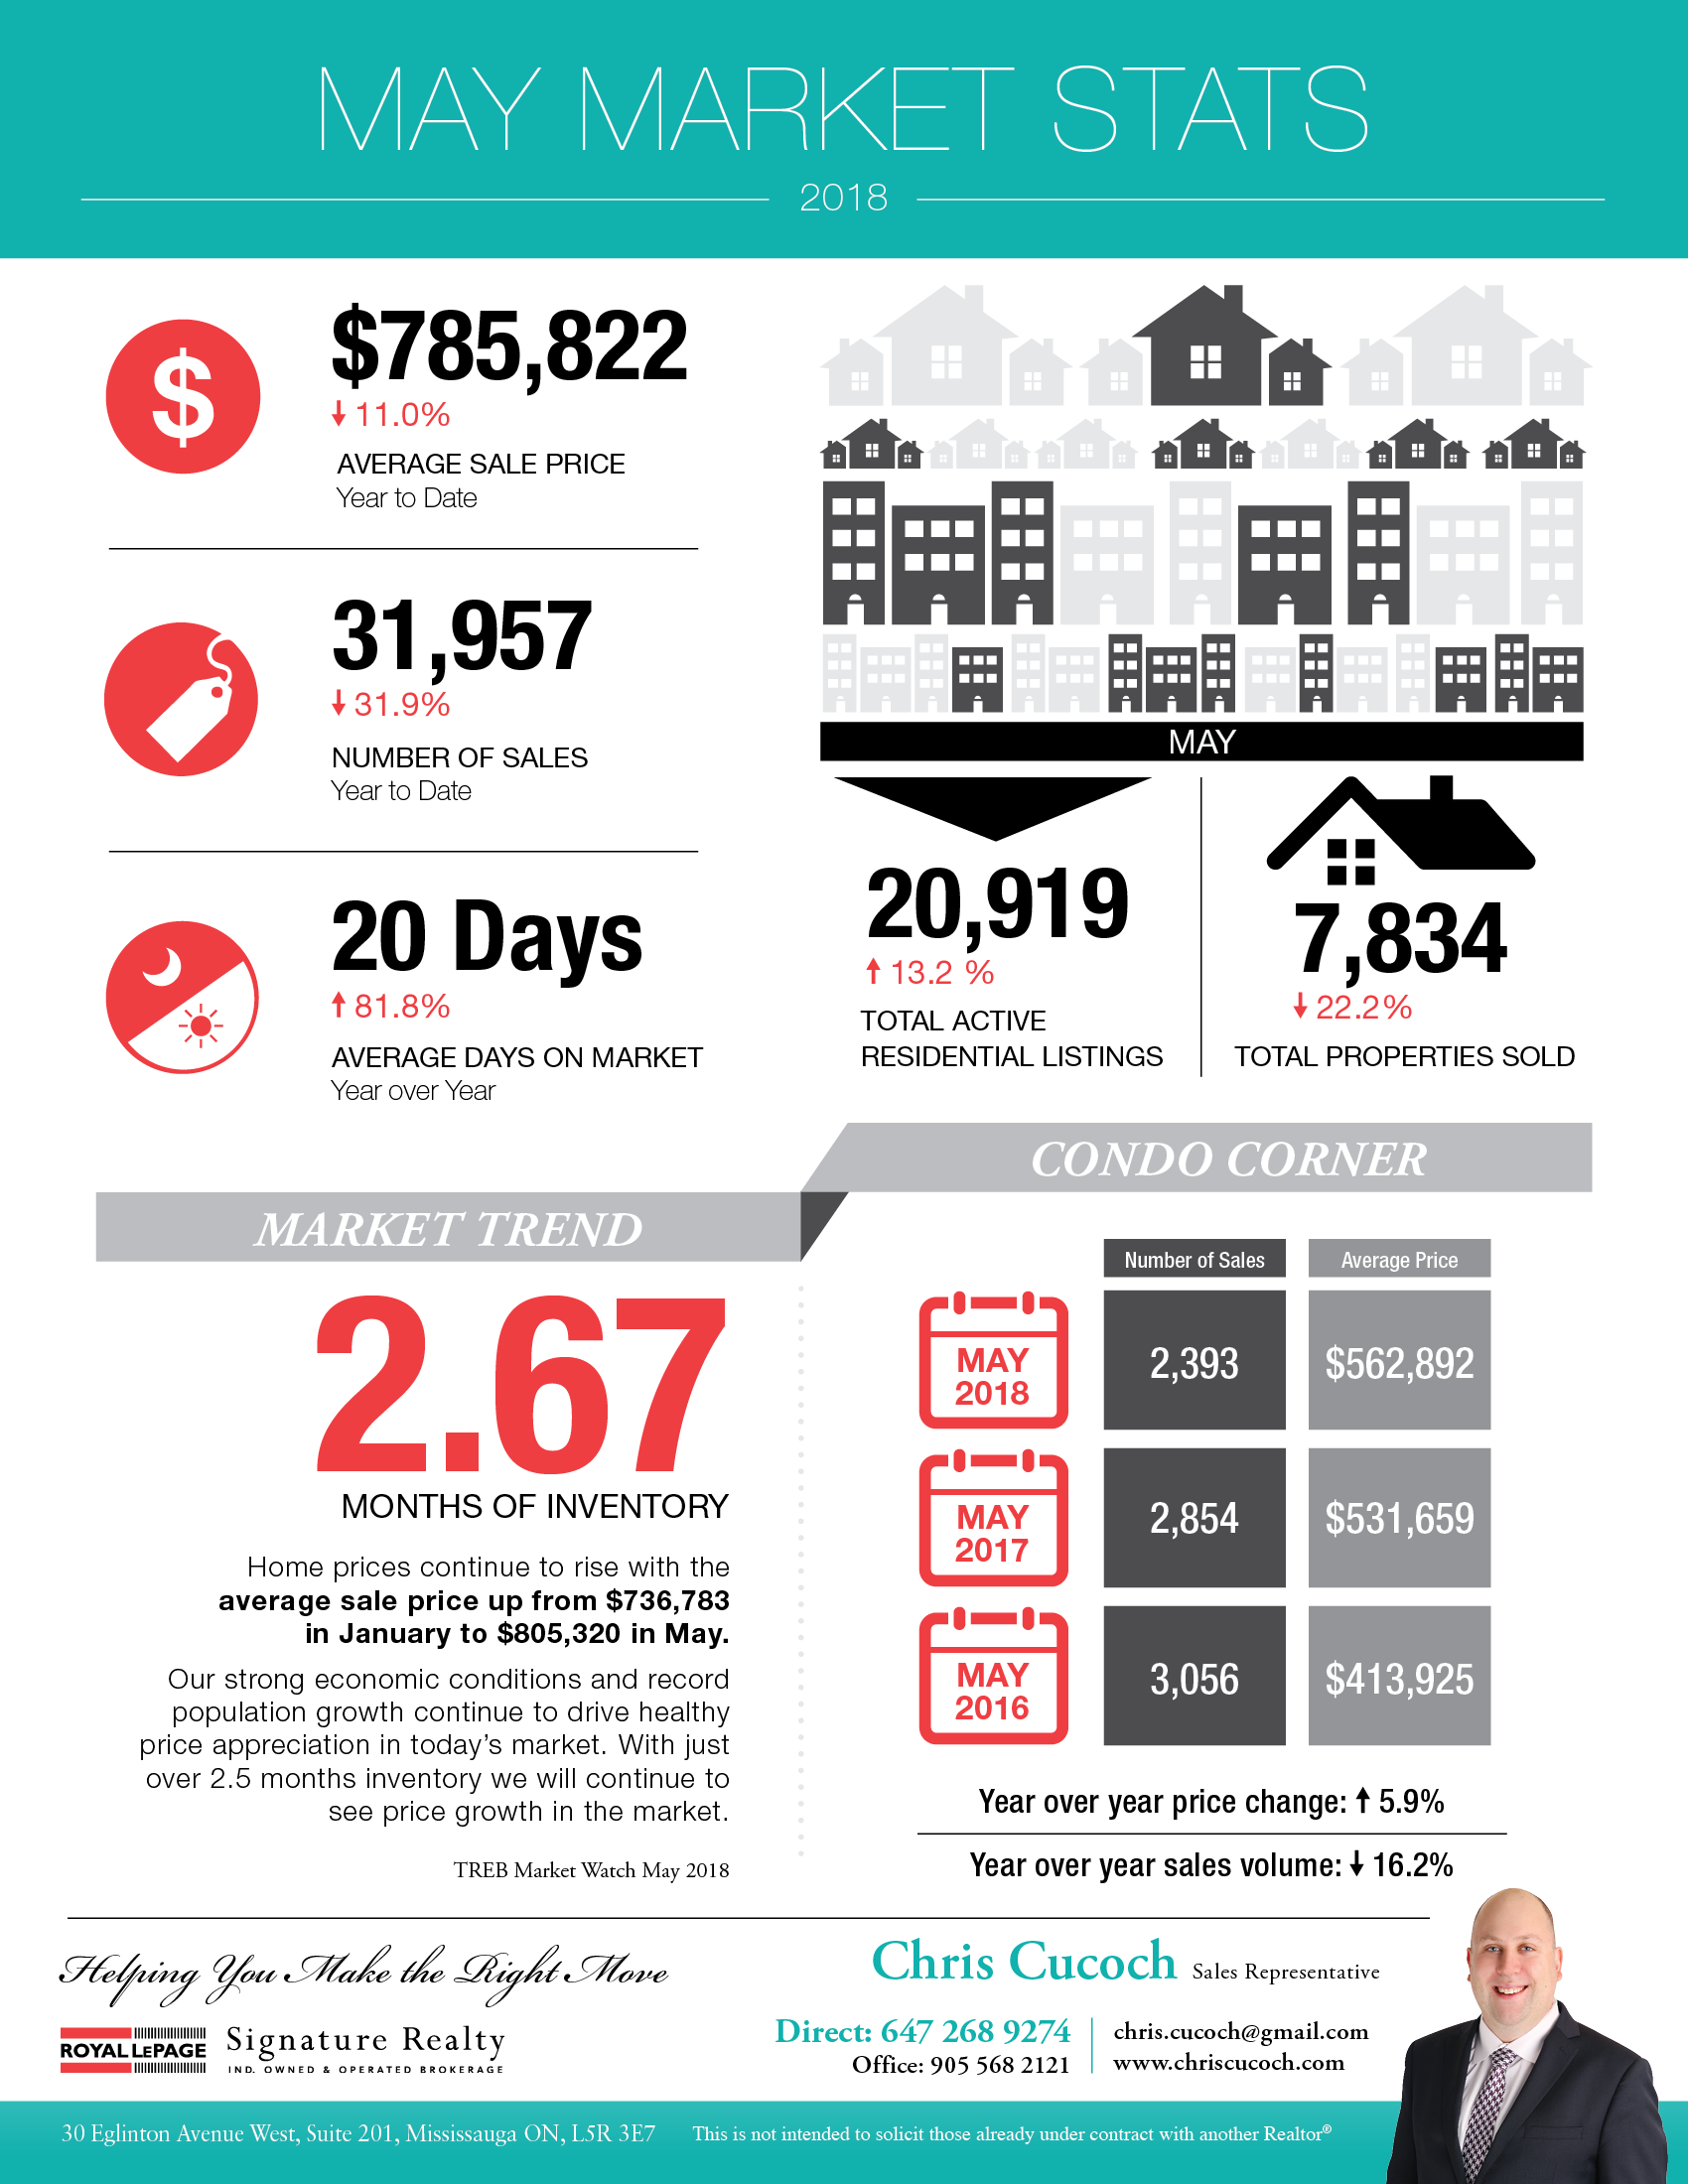 Toronto Real Estate Market Statistics Infographic for May 2018